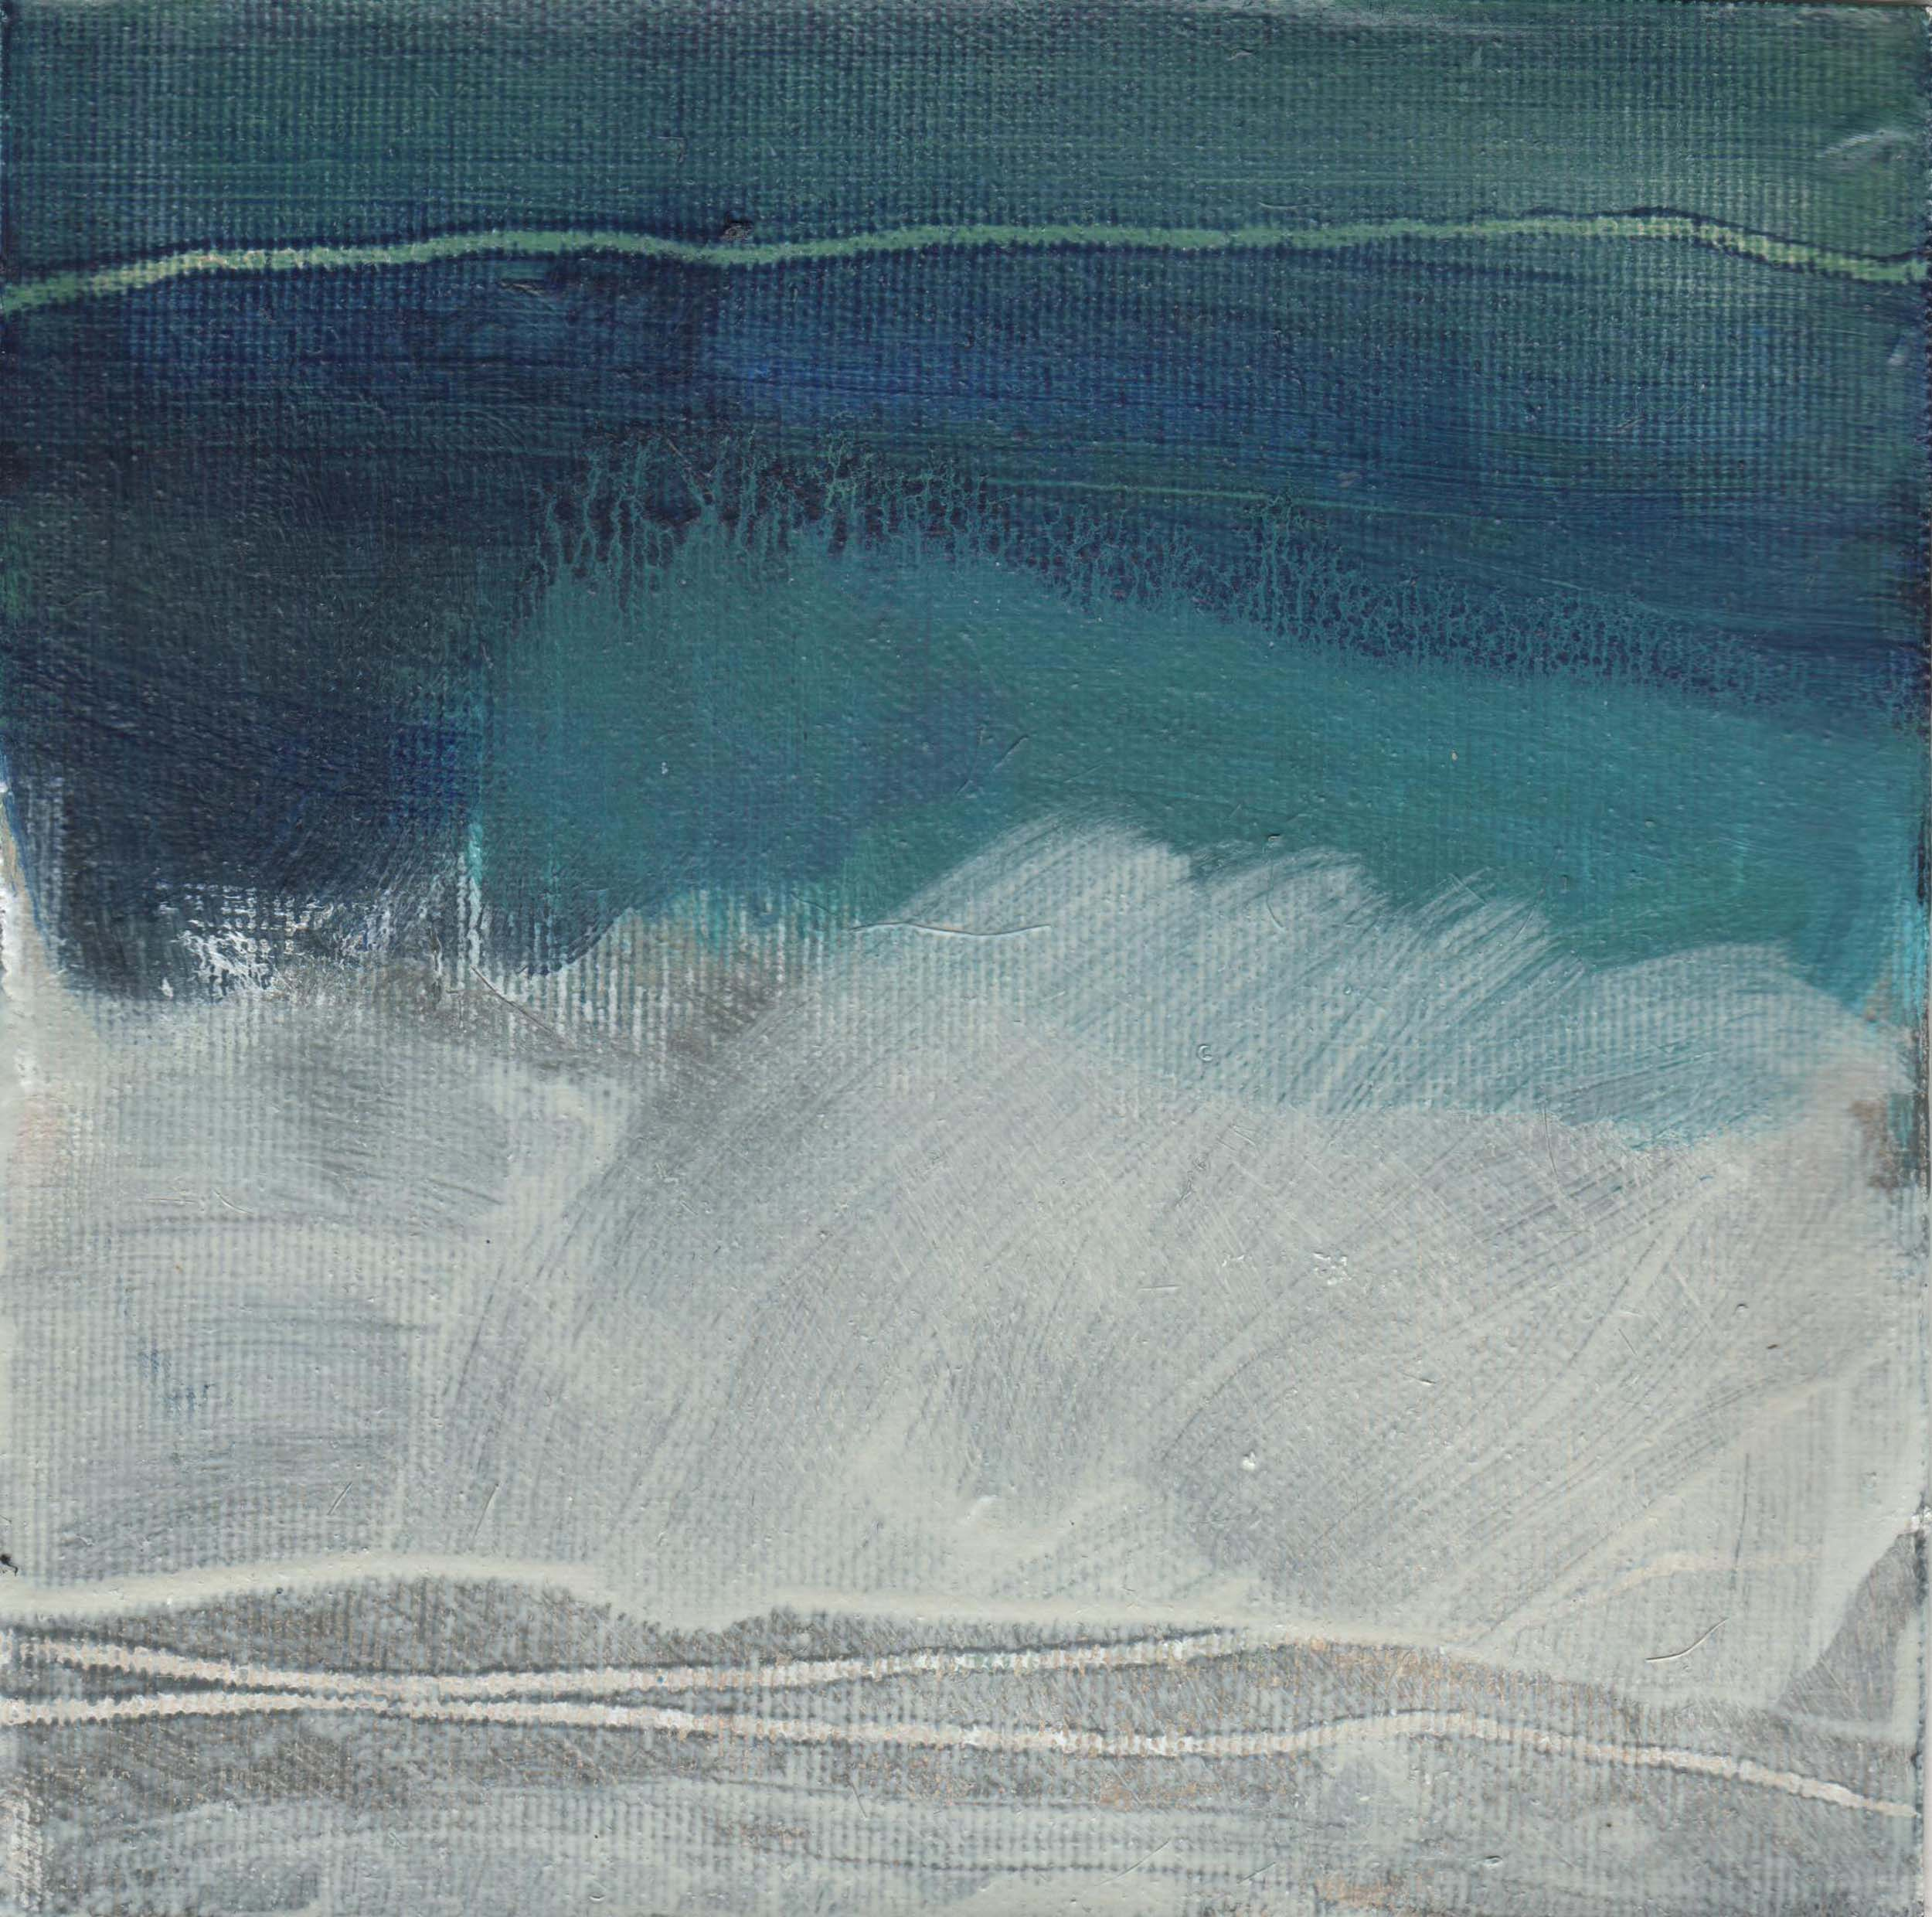 Leah Beggs 2008-Sea Spray at Dogs Bay-Oil on Unstretched Canvas-18 x 18 cm_sml.jpg